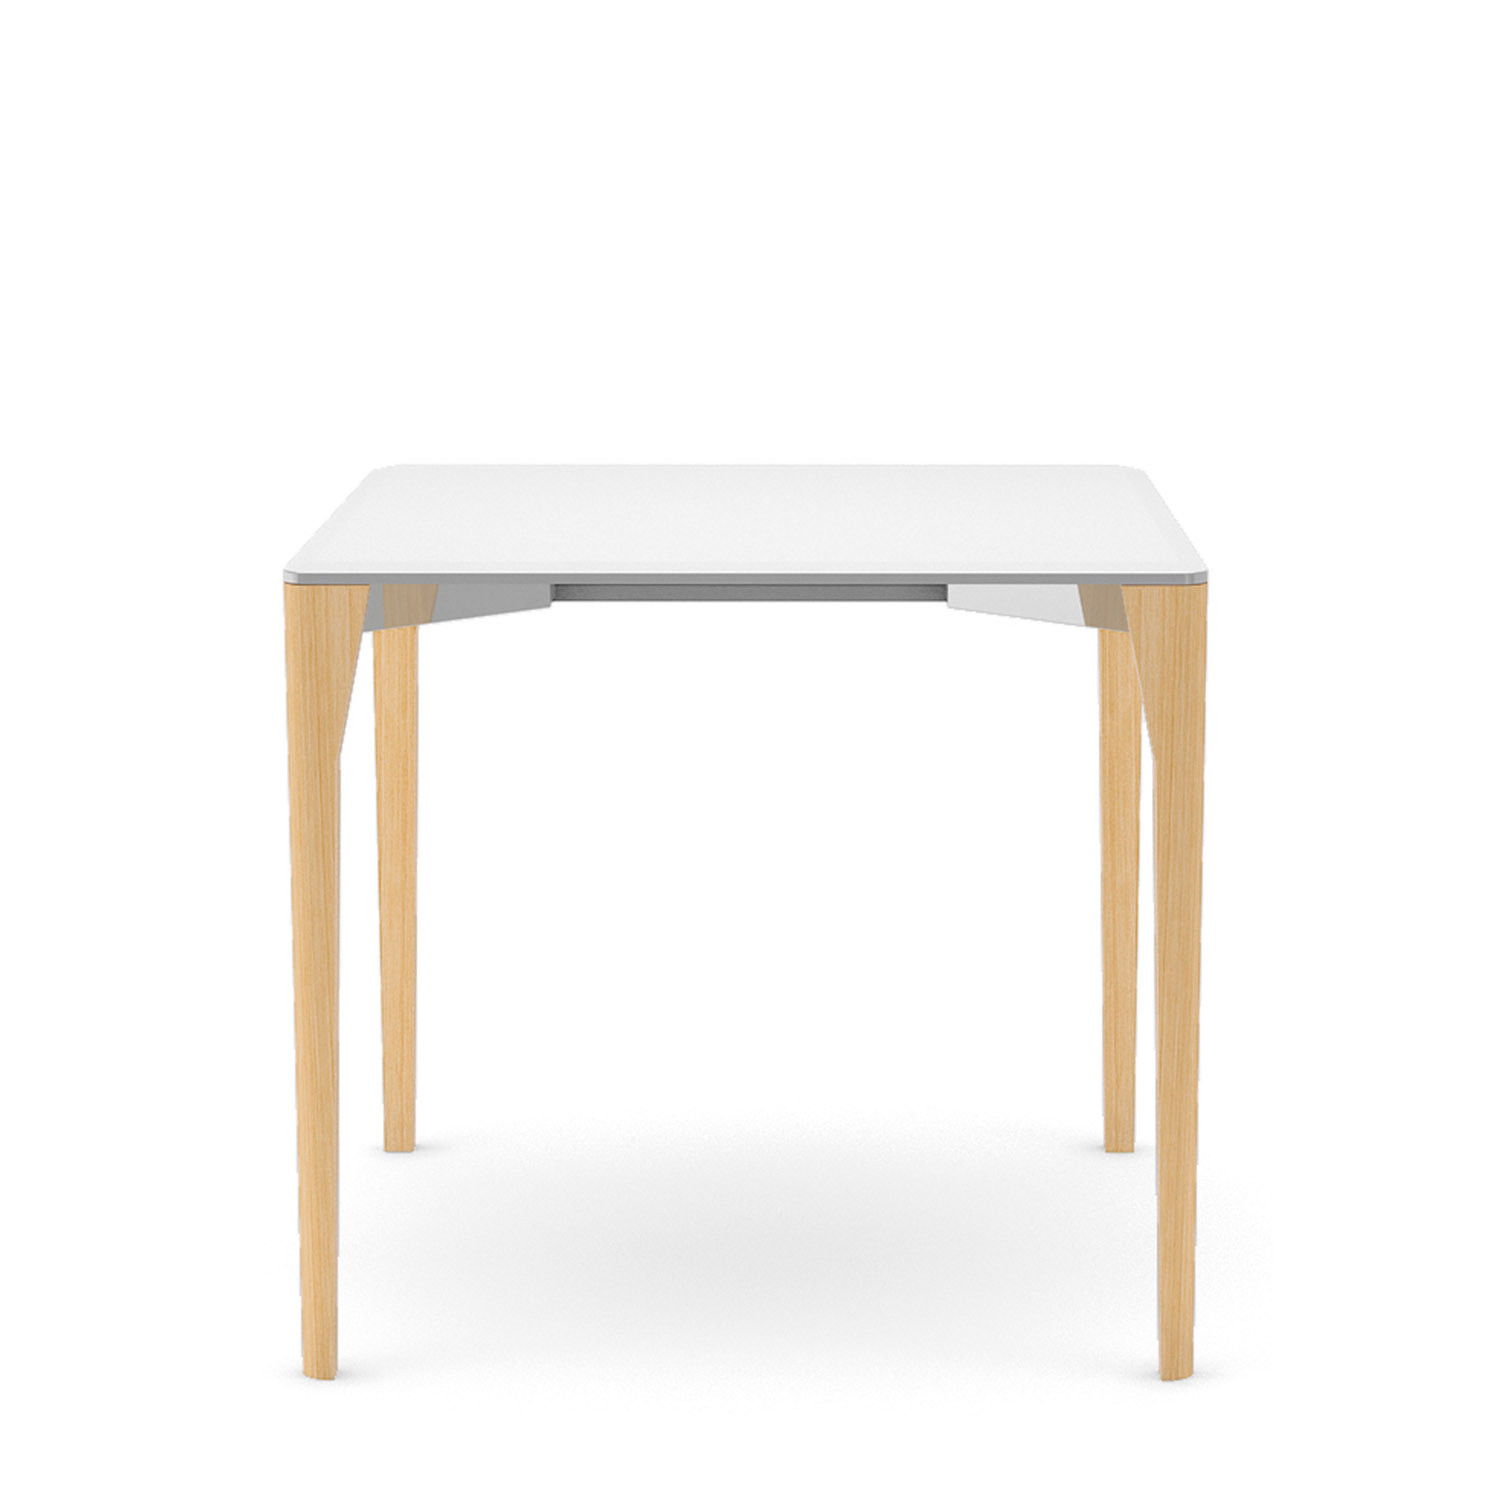 Retro Square Dining Table by Connection